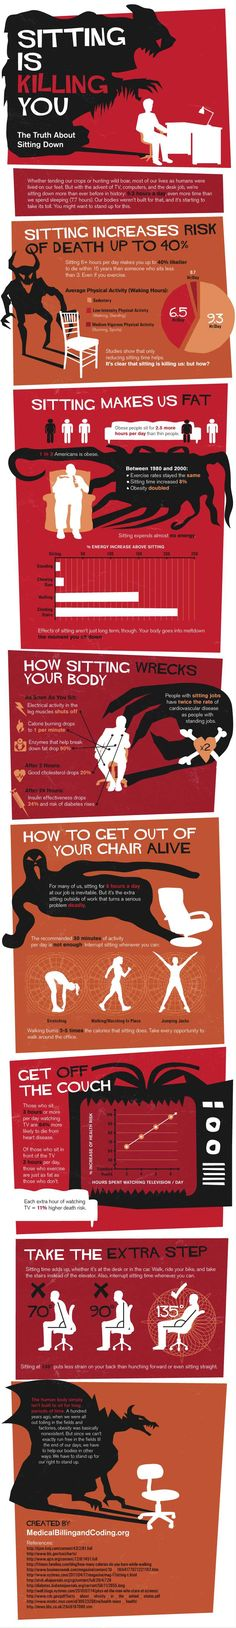 Sitting Is Killing You [Infographic]